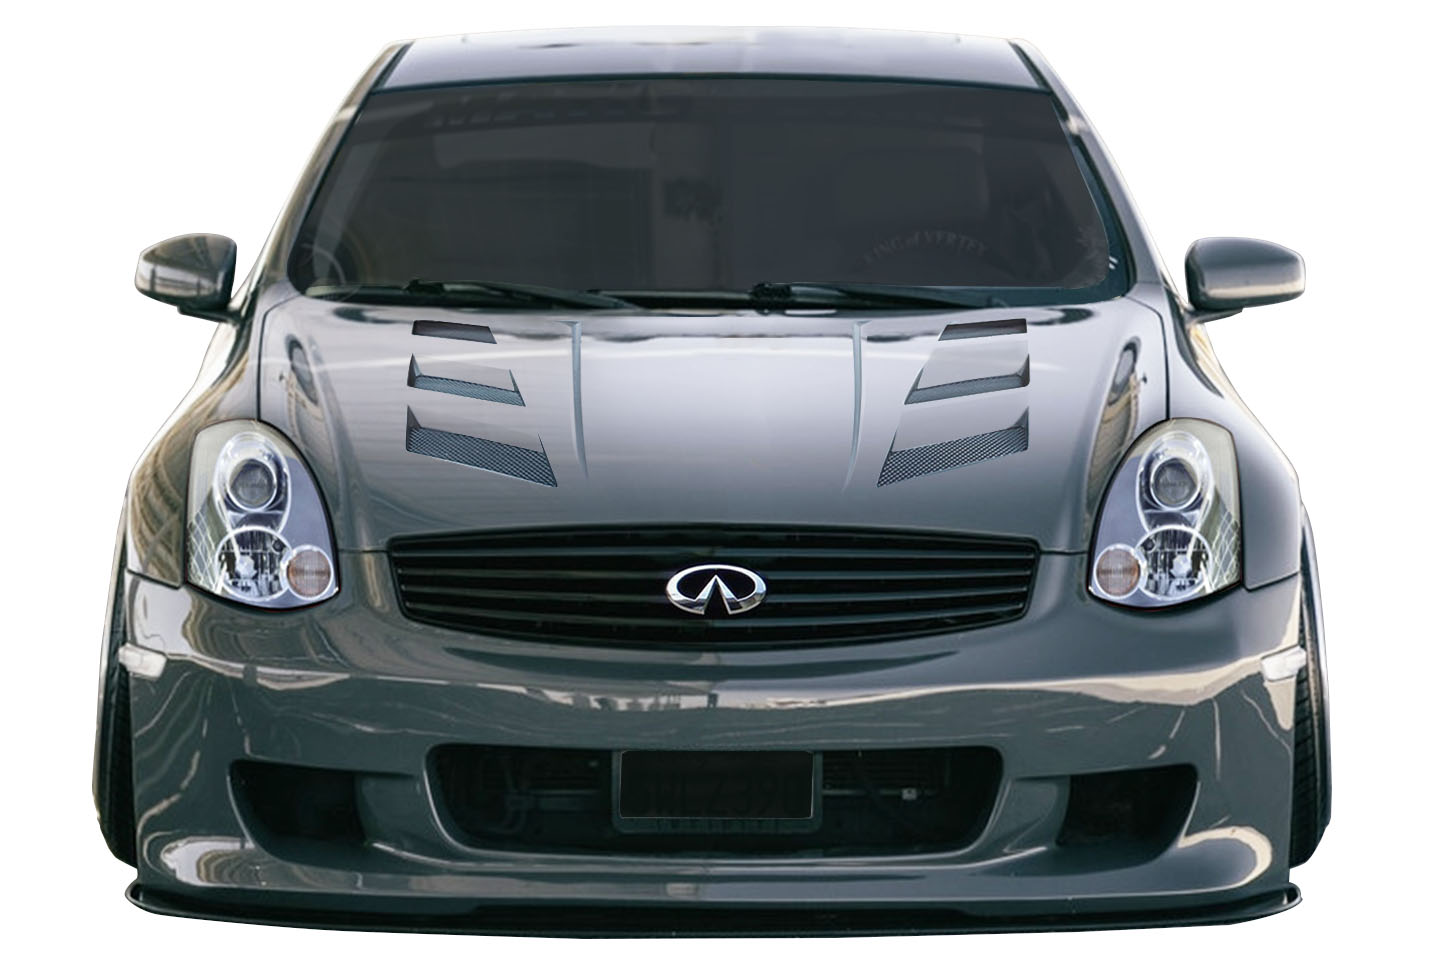 2003-2007 Infiniti G35 Coupe Body Kit